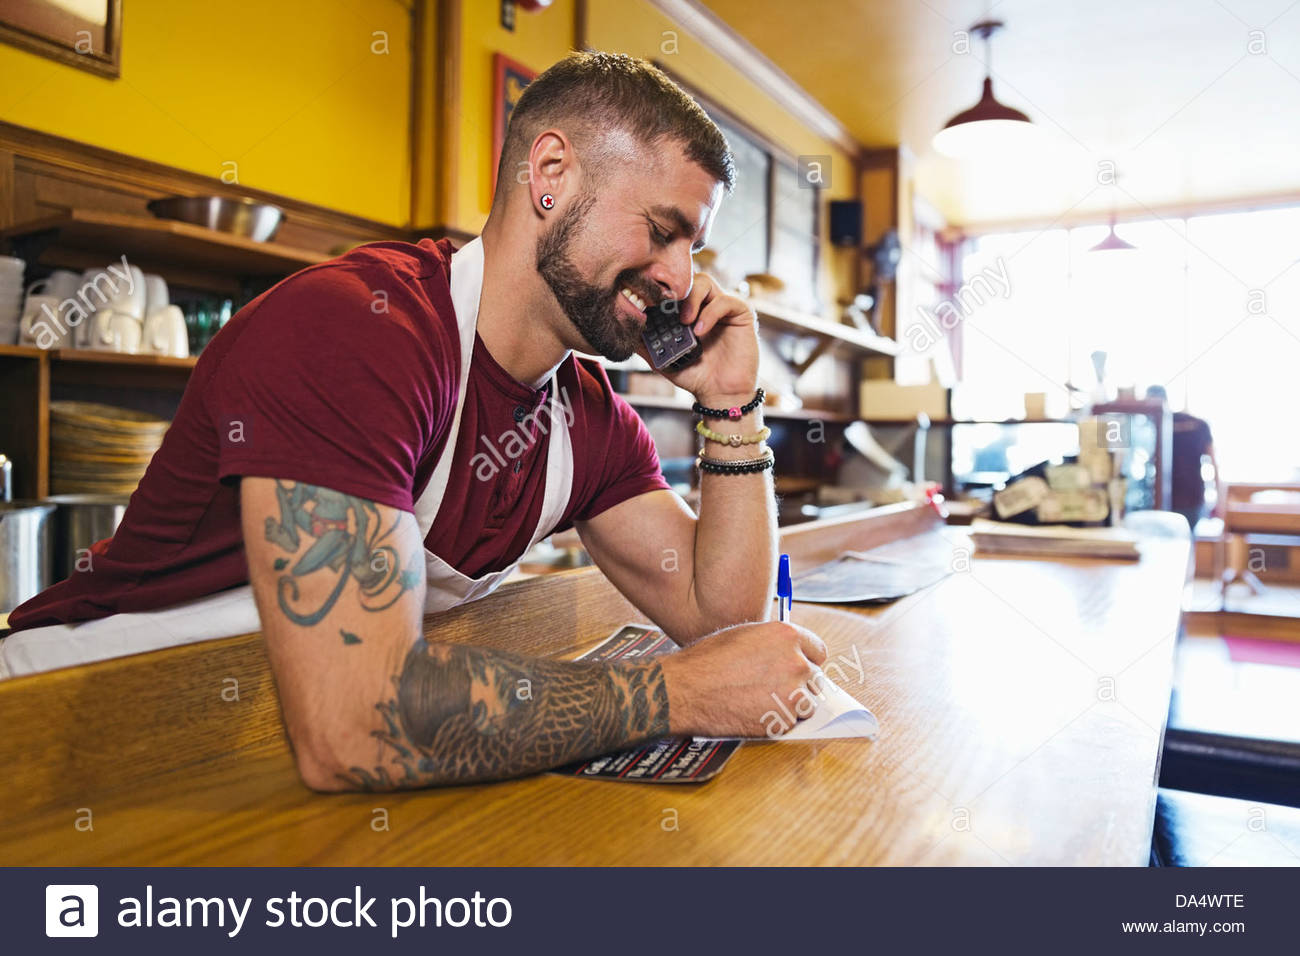 Male deli owner taking order by phone - Stock Image